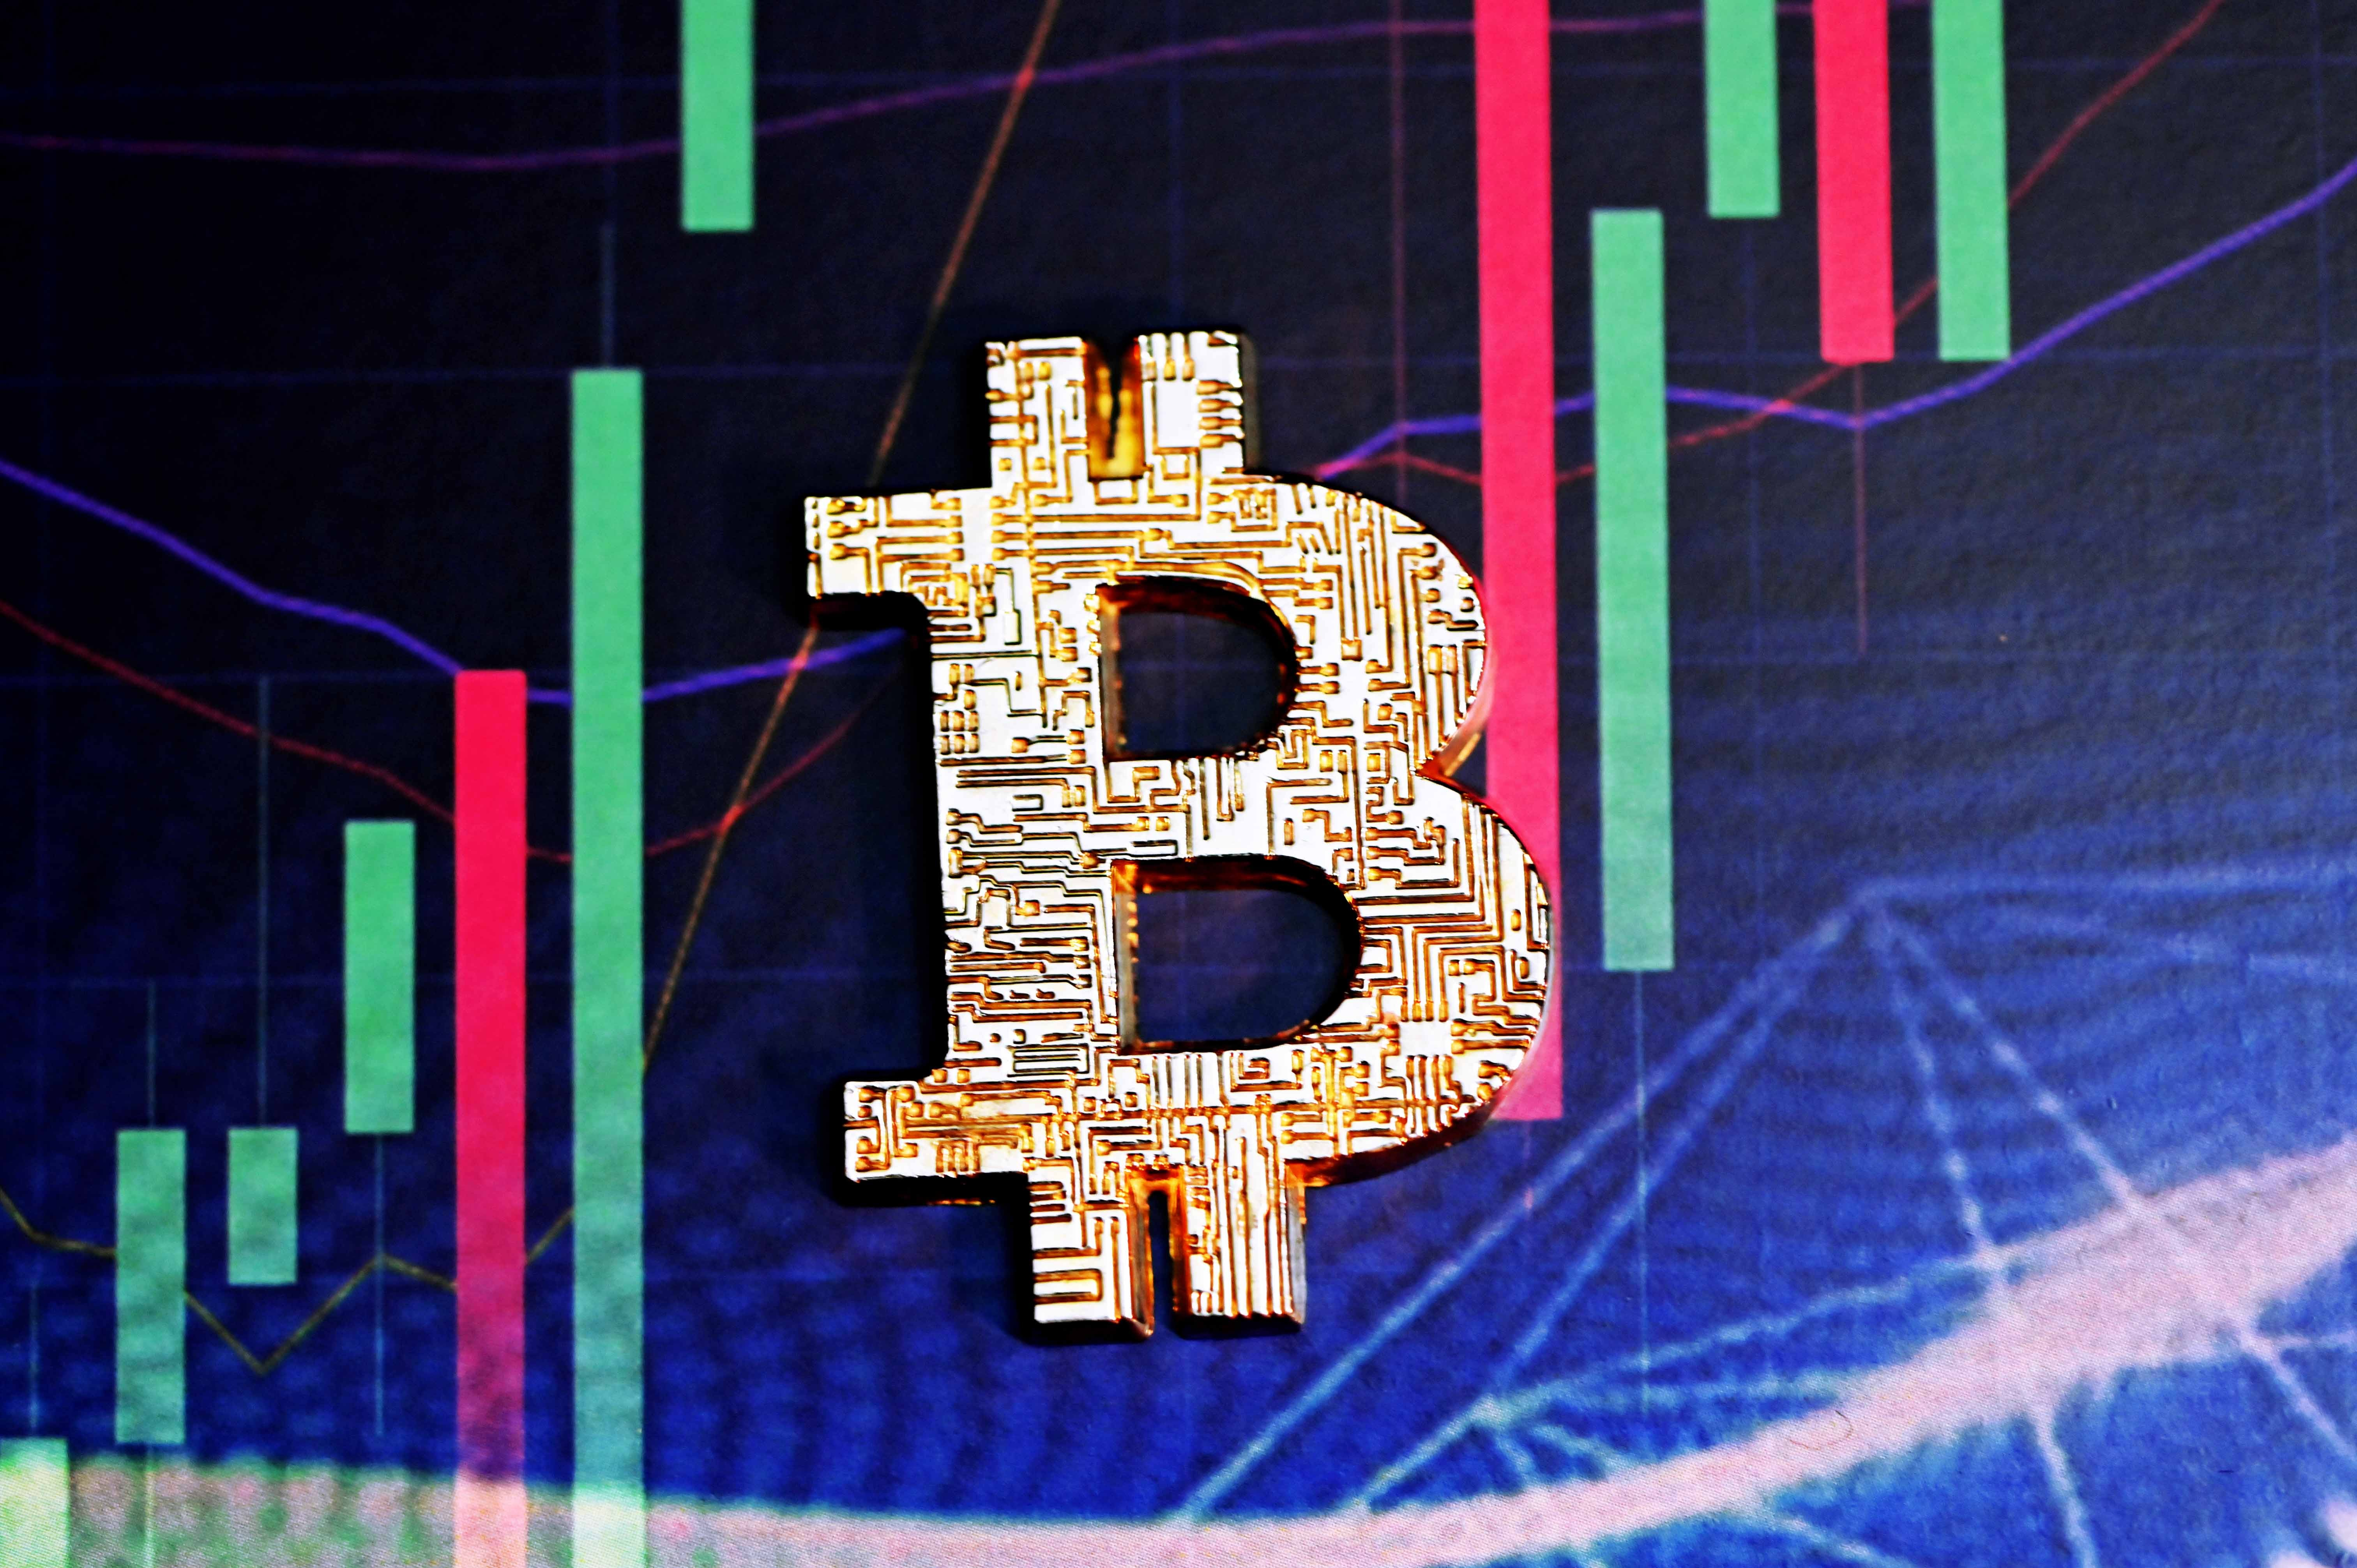 Bitcoin Hash Rate Might Make New ATH Soon, What Does It Mean For The Price?